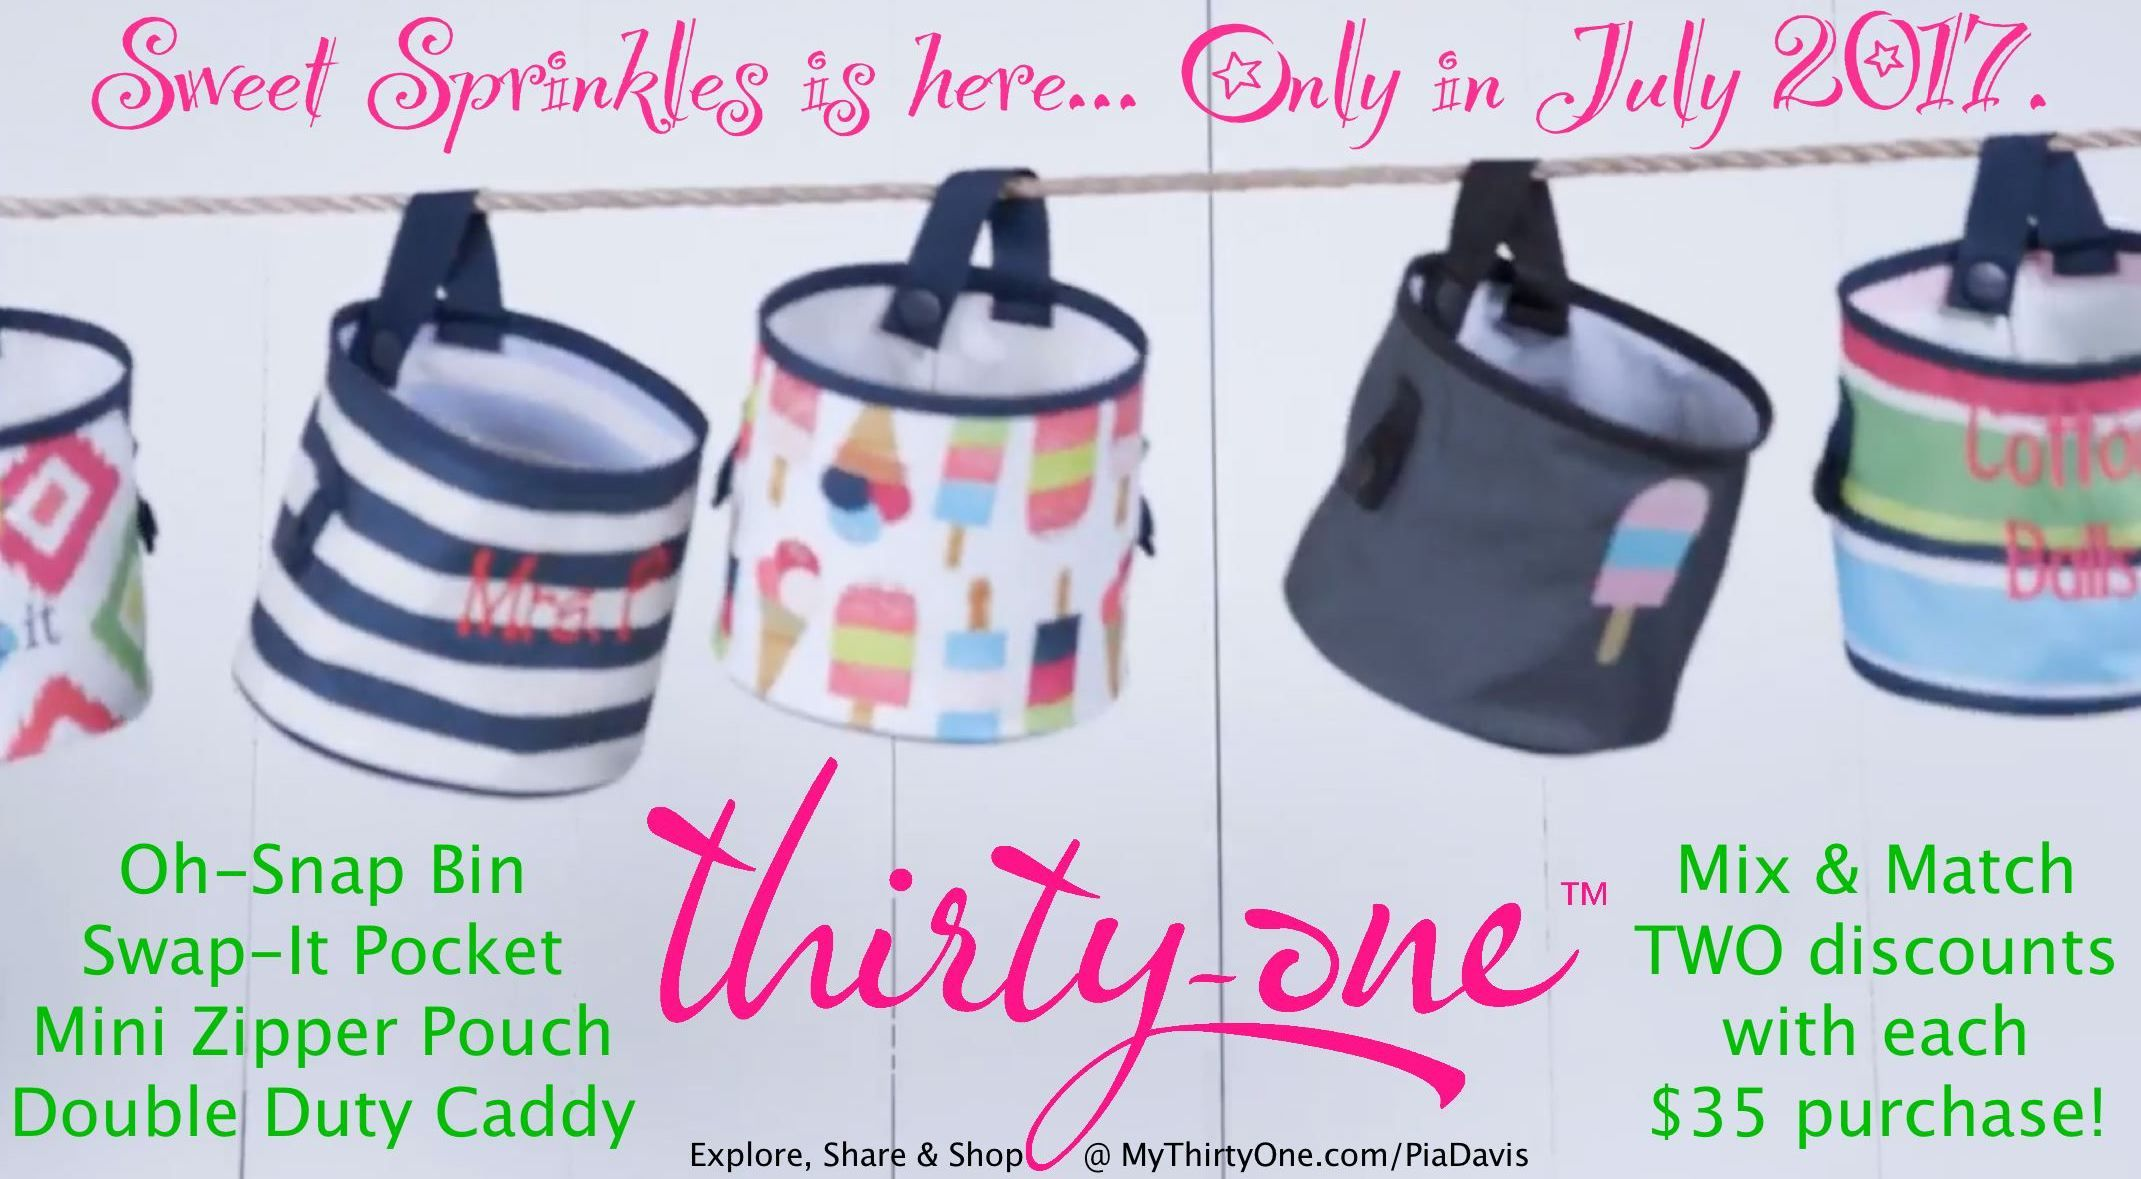 Oh snap bin ideas - Sweet Sprinkles From Thirty One Is Here But Only For July 2017 Oh